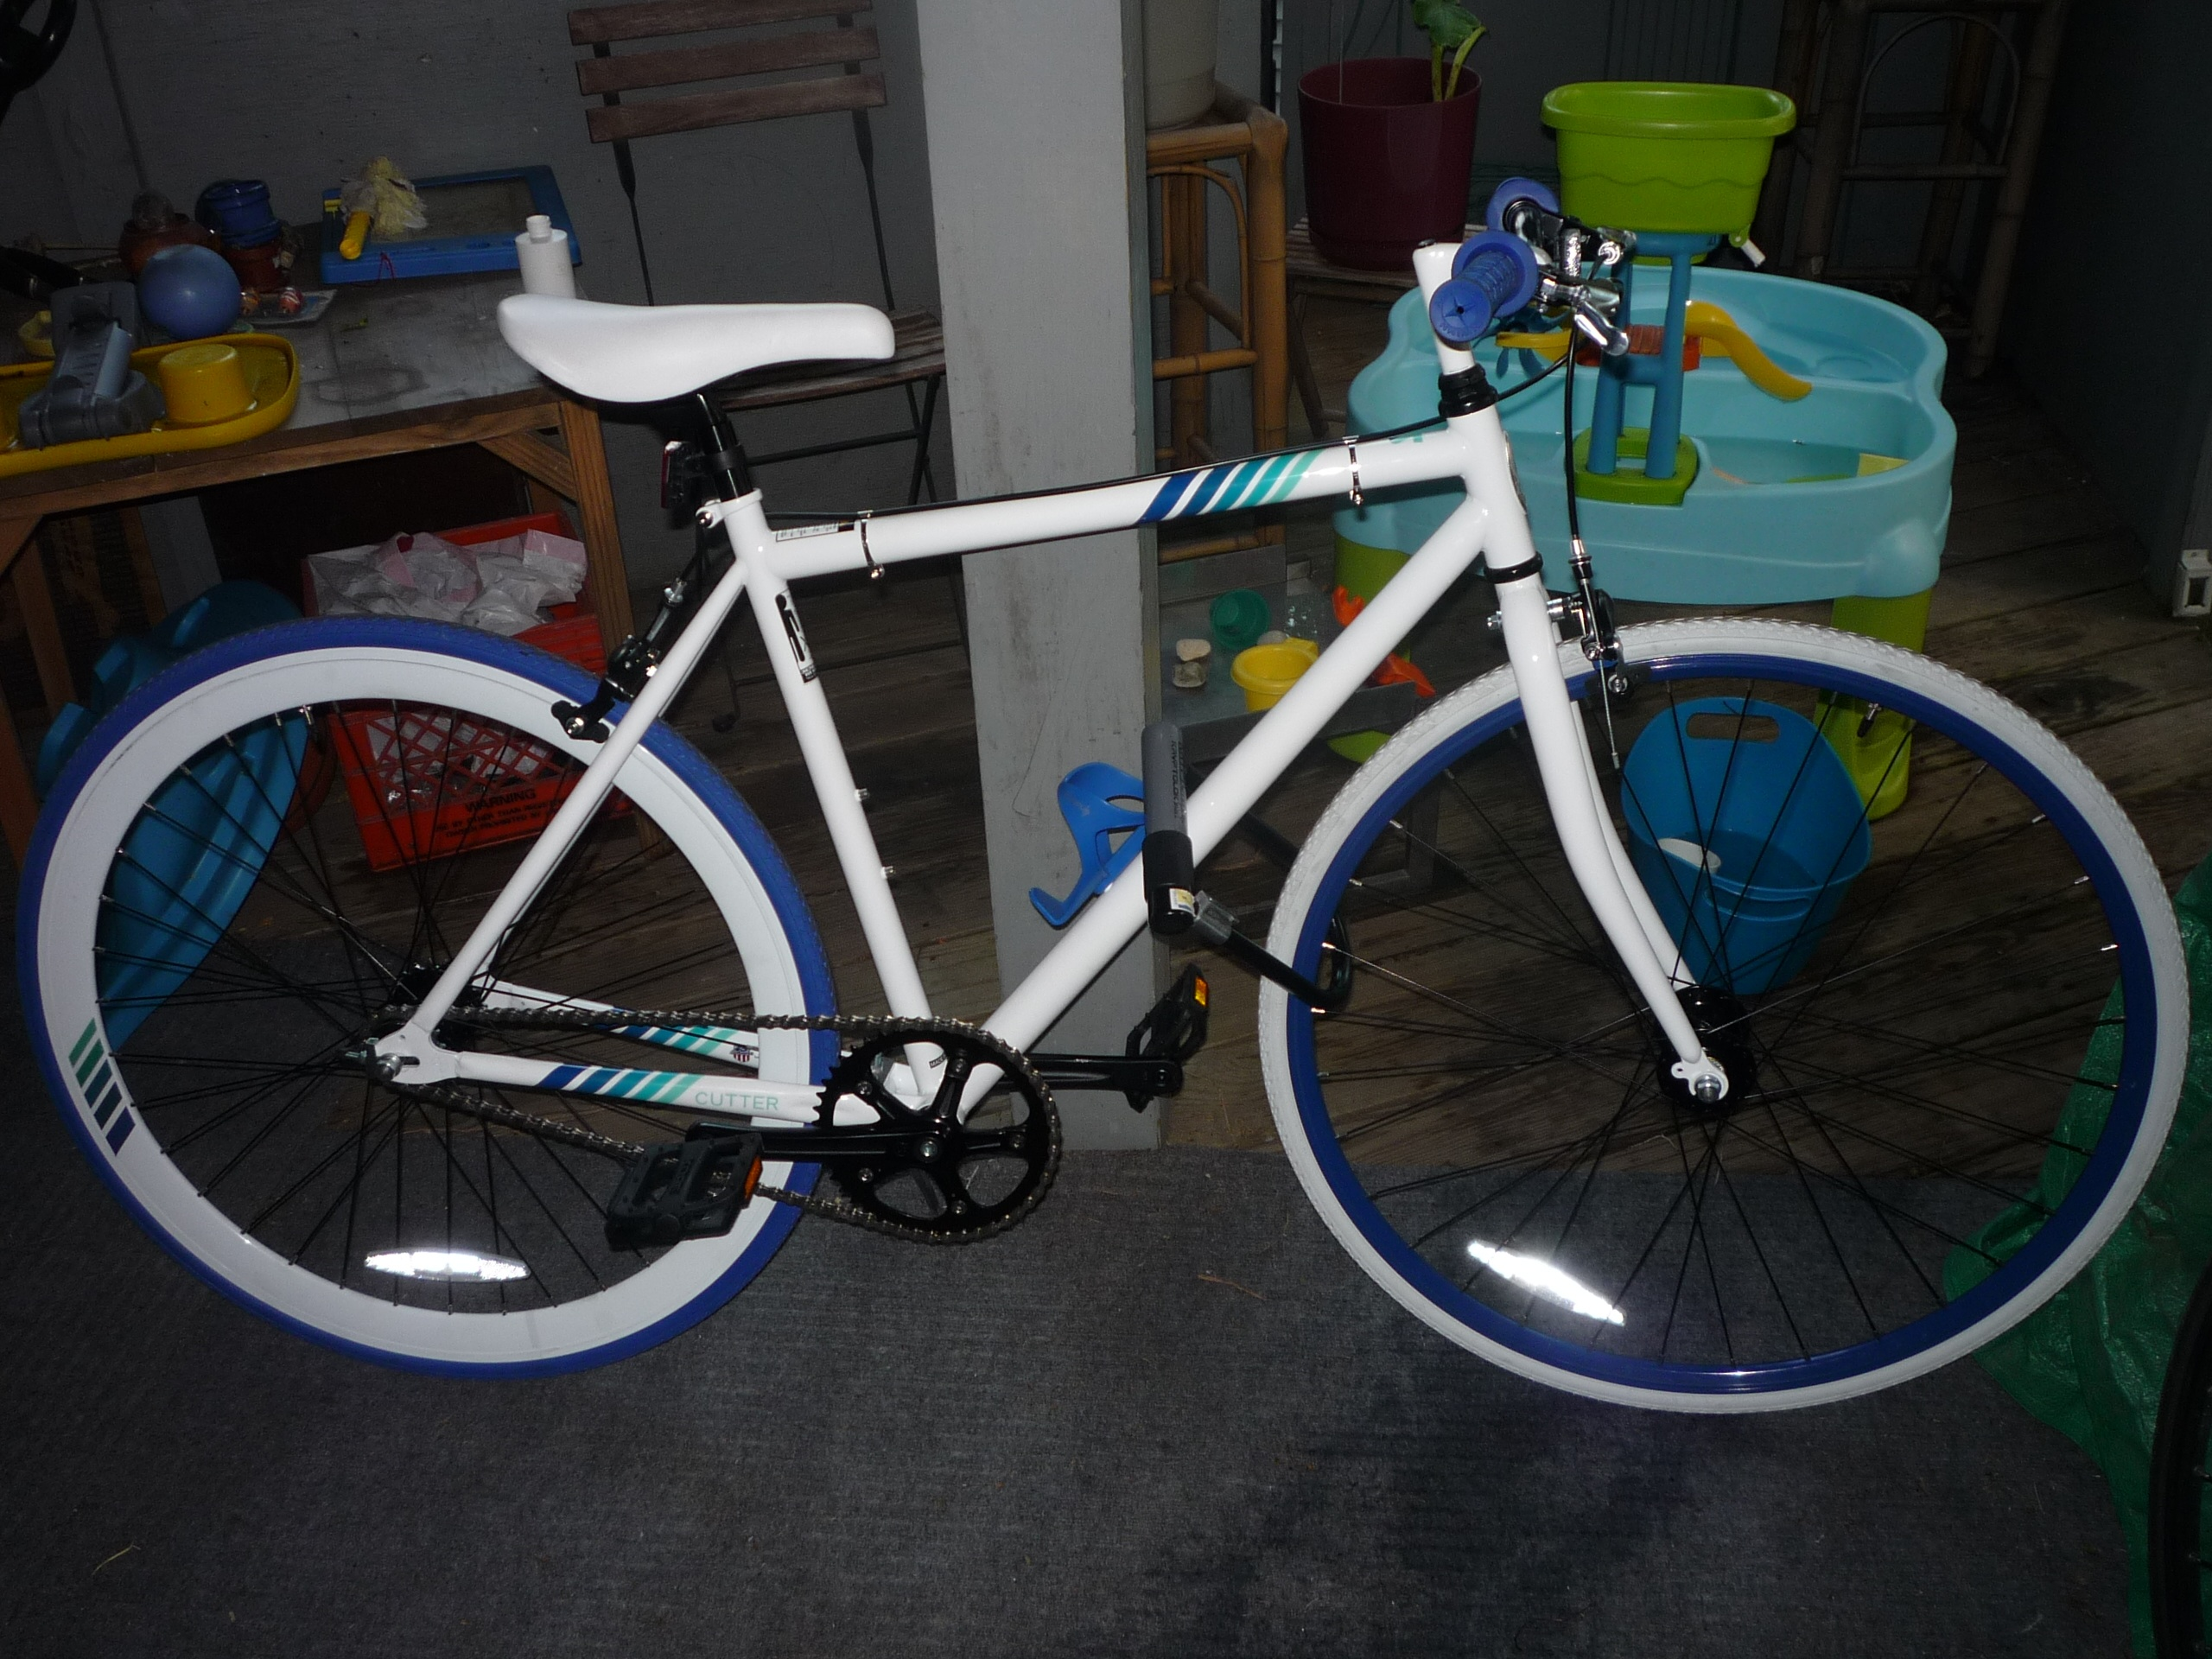 Schwinn dating | Schwinn Serial Numbers and Date Codes by Day